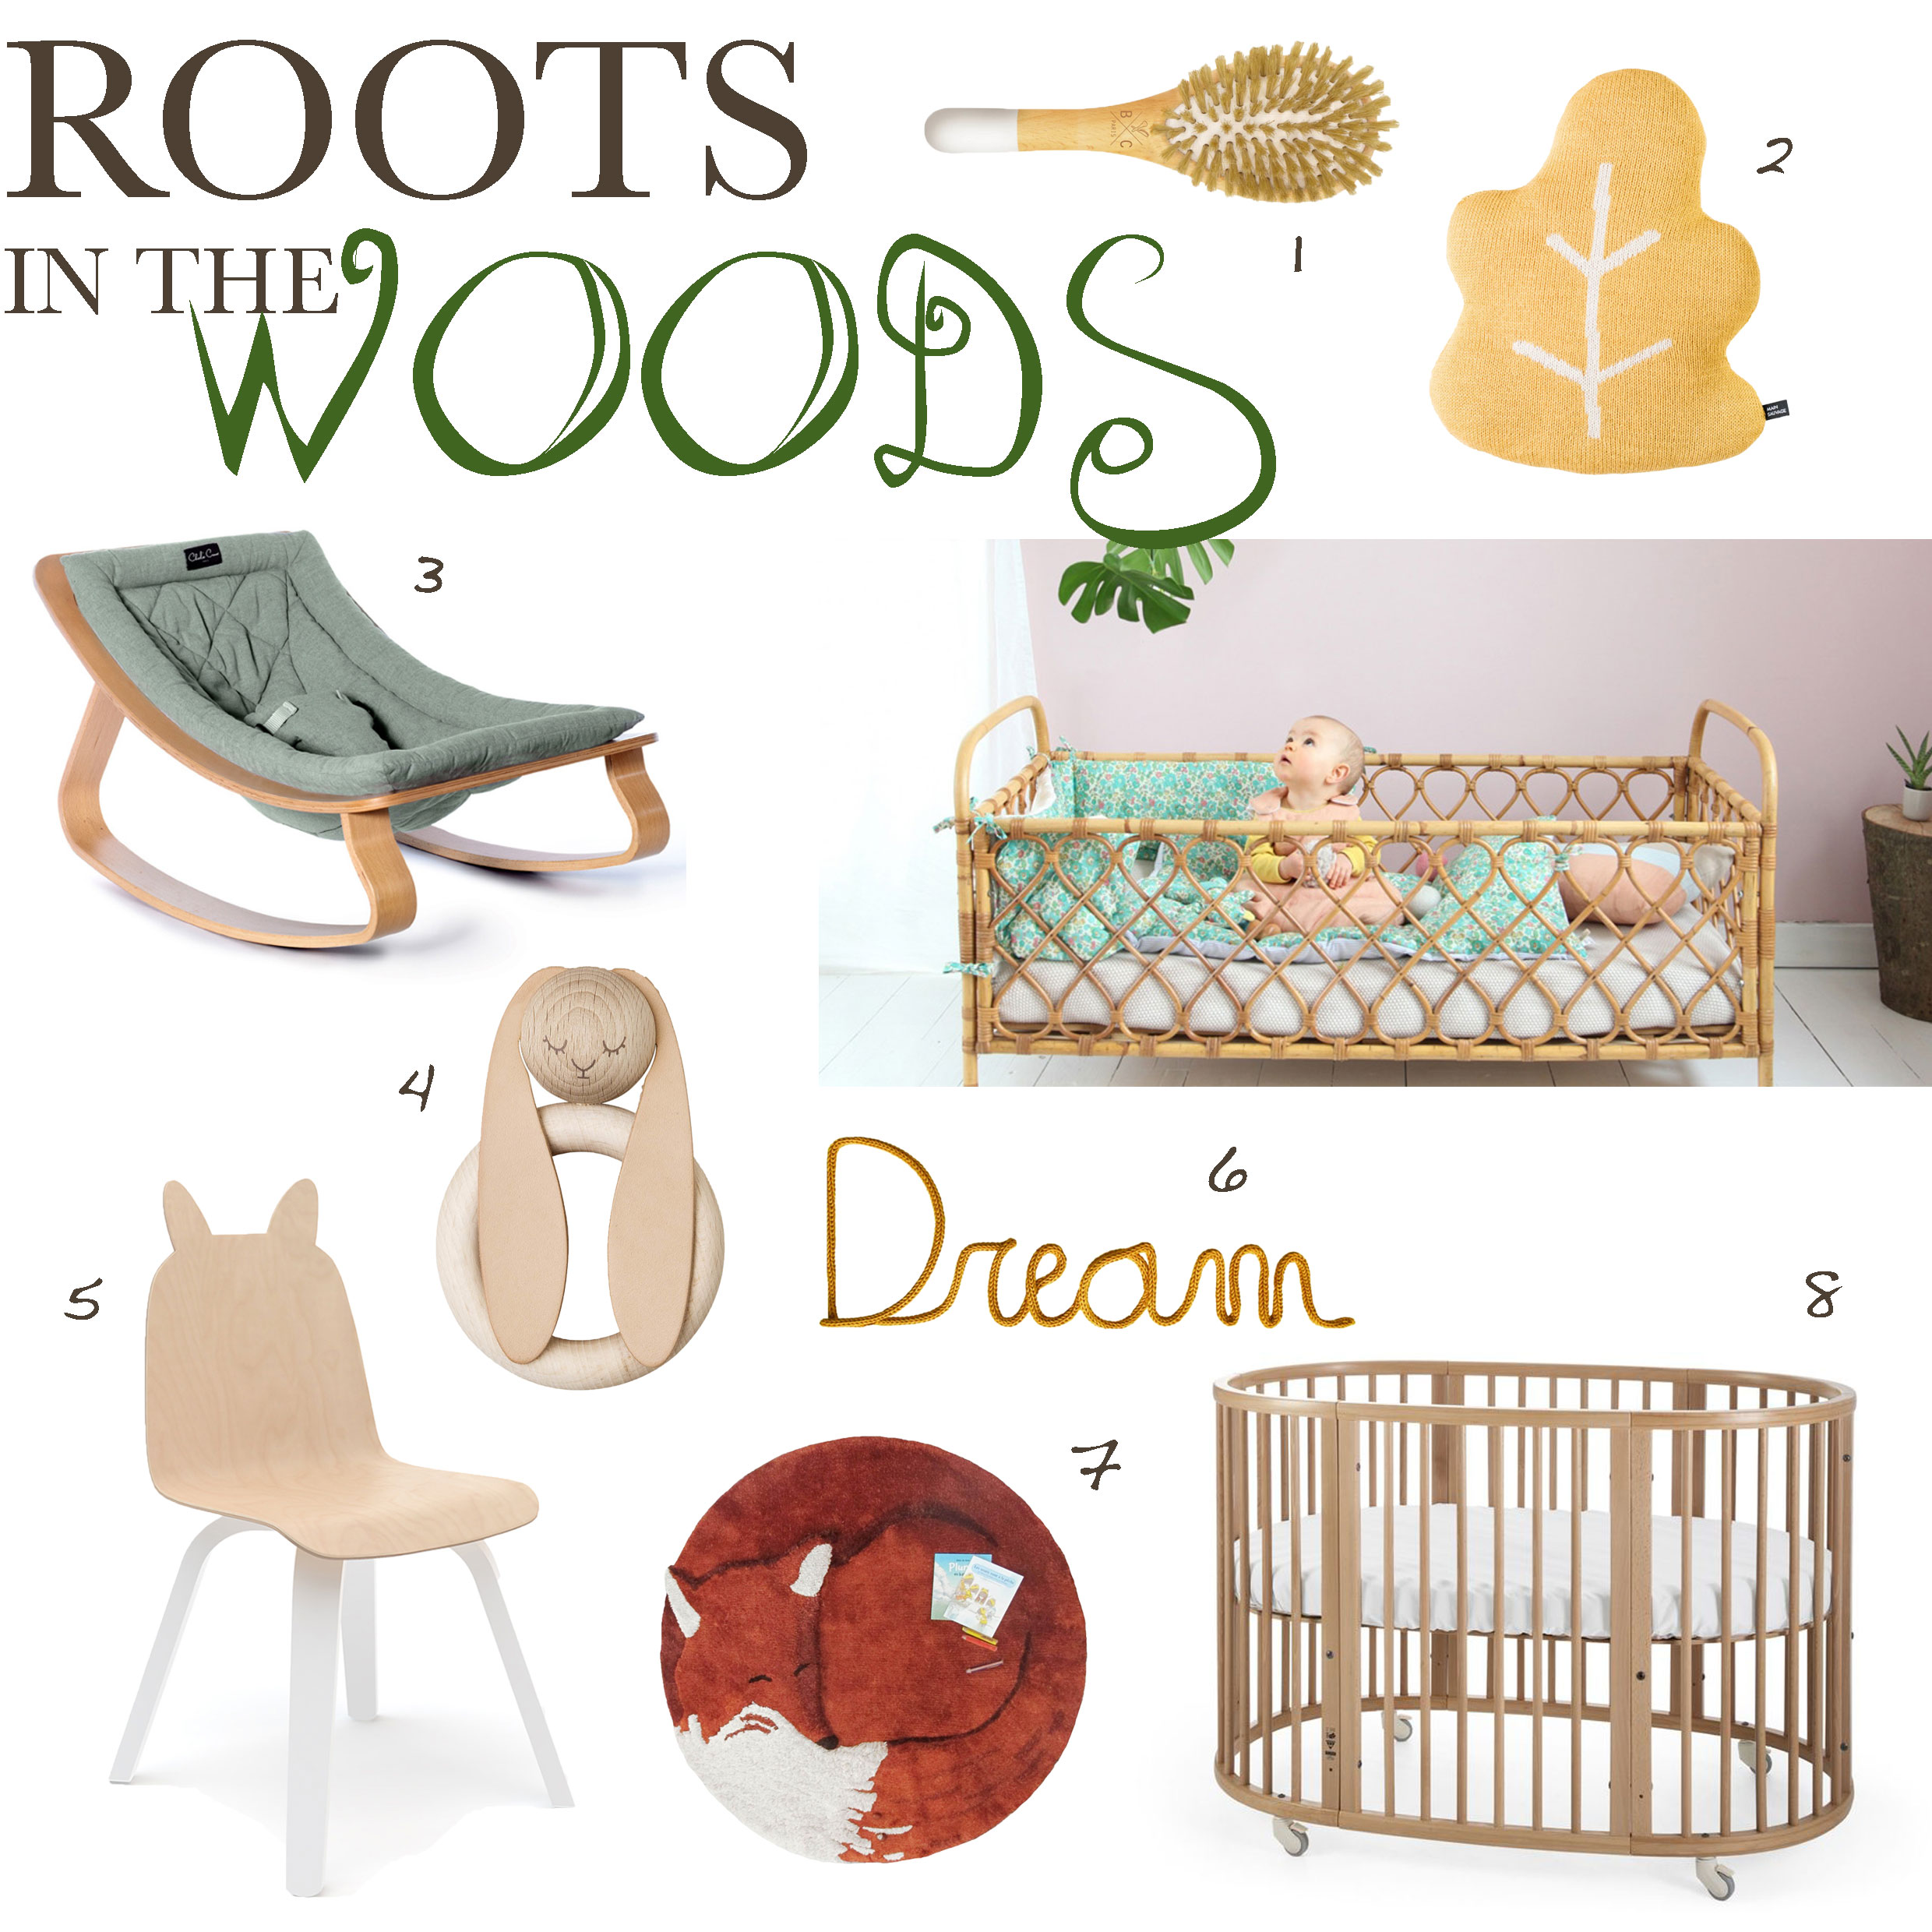 pretapregnant-shopping-interior-roots-in-the-woods